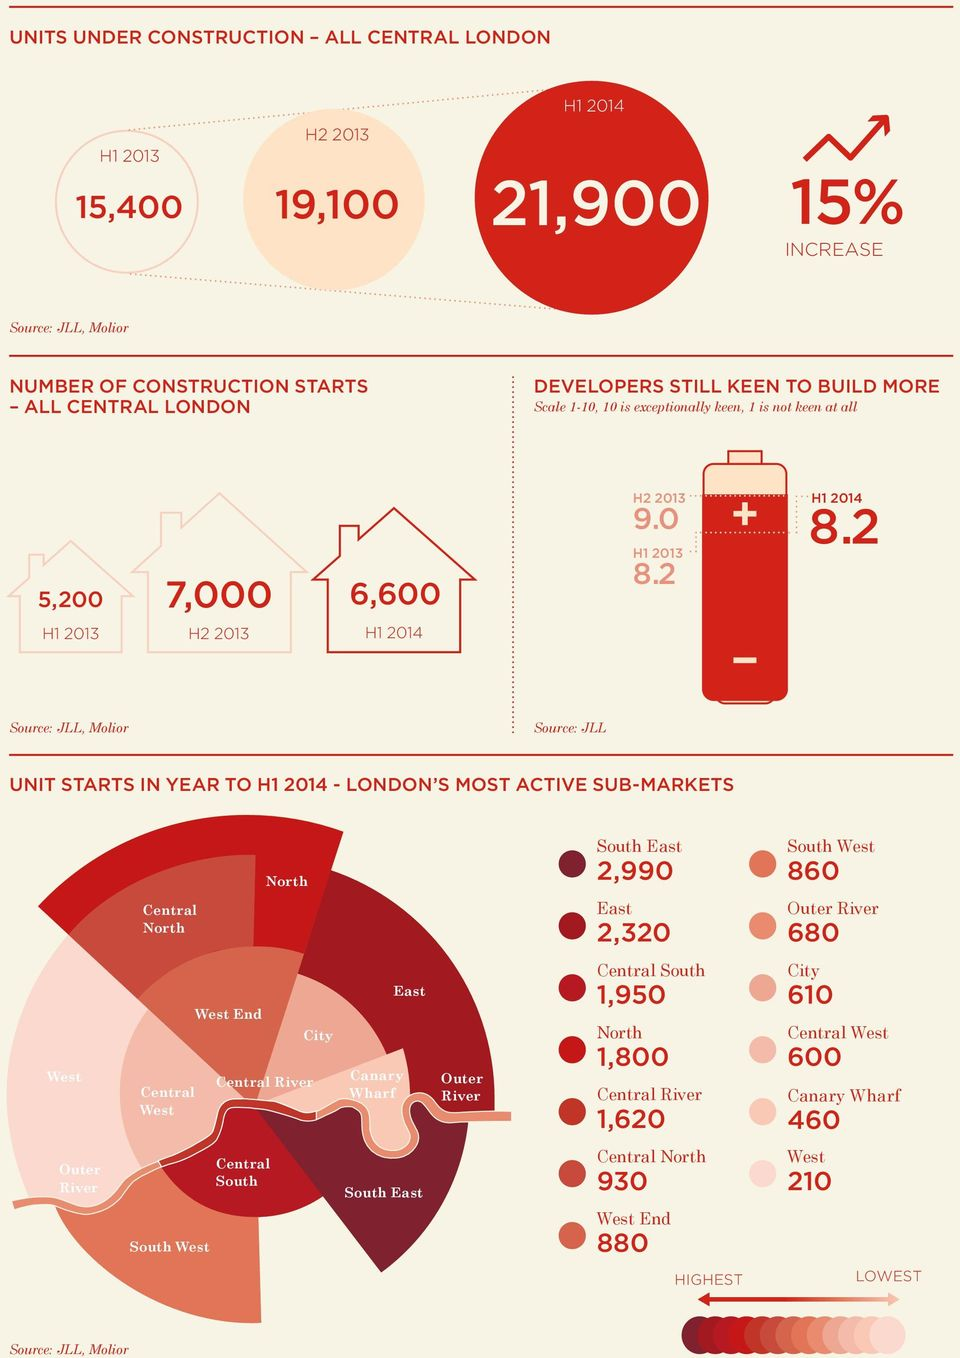 2 H1 2013 H2 2013 H1 2014 Source: JLL, Molior Source: JLL UNIT STARTS IN YEAR TO H1 2014 - LONDON S MOST ACTIVE SUB-MARKETS Central CENTRAL North NORTH WEST NORTHNorth South East 2,990 East 2,320